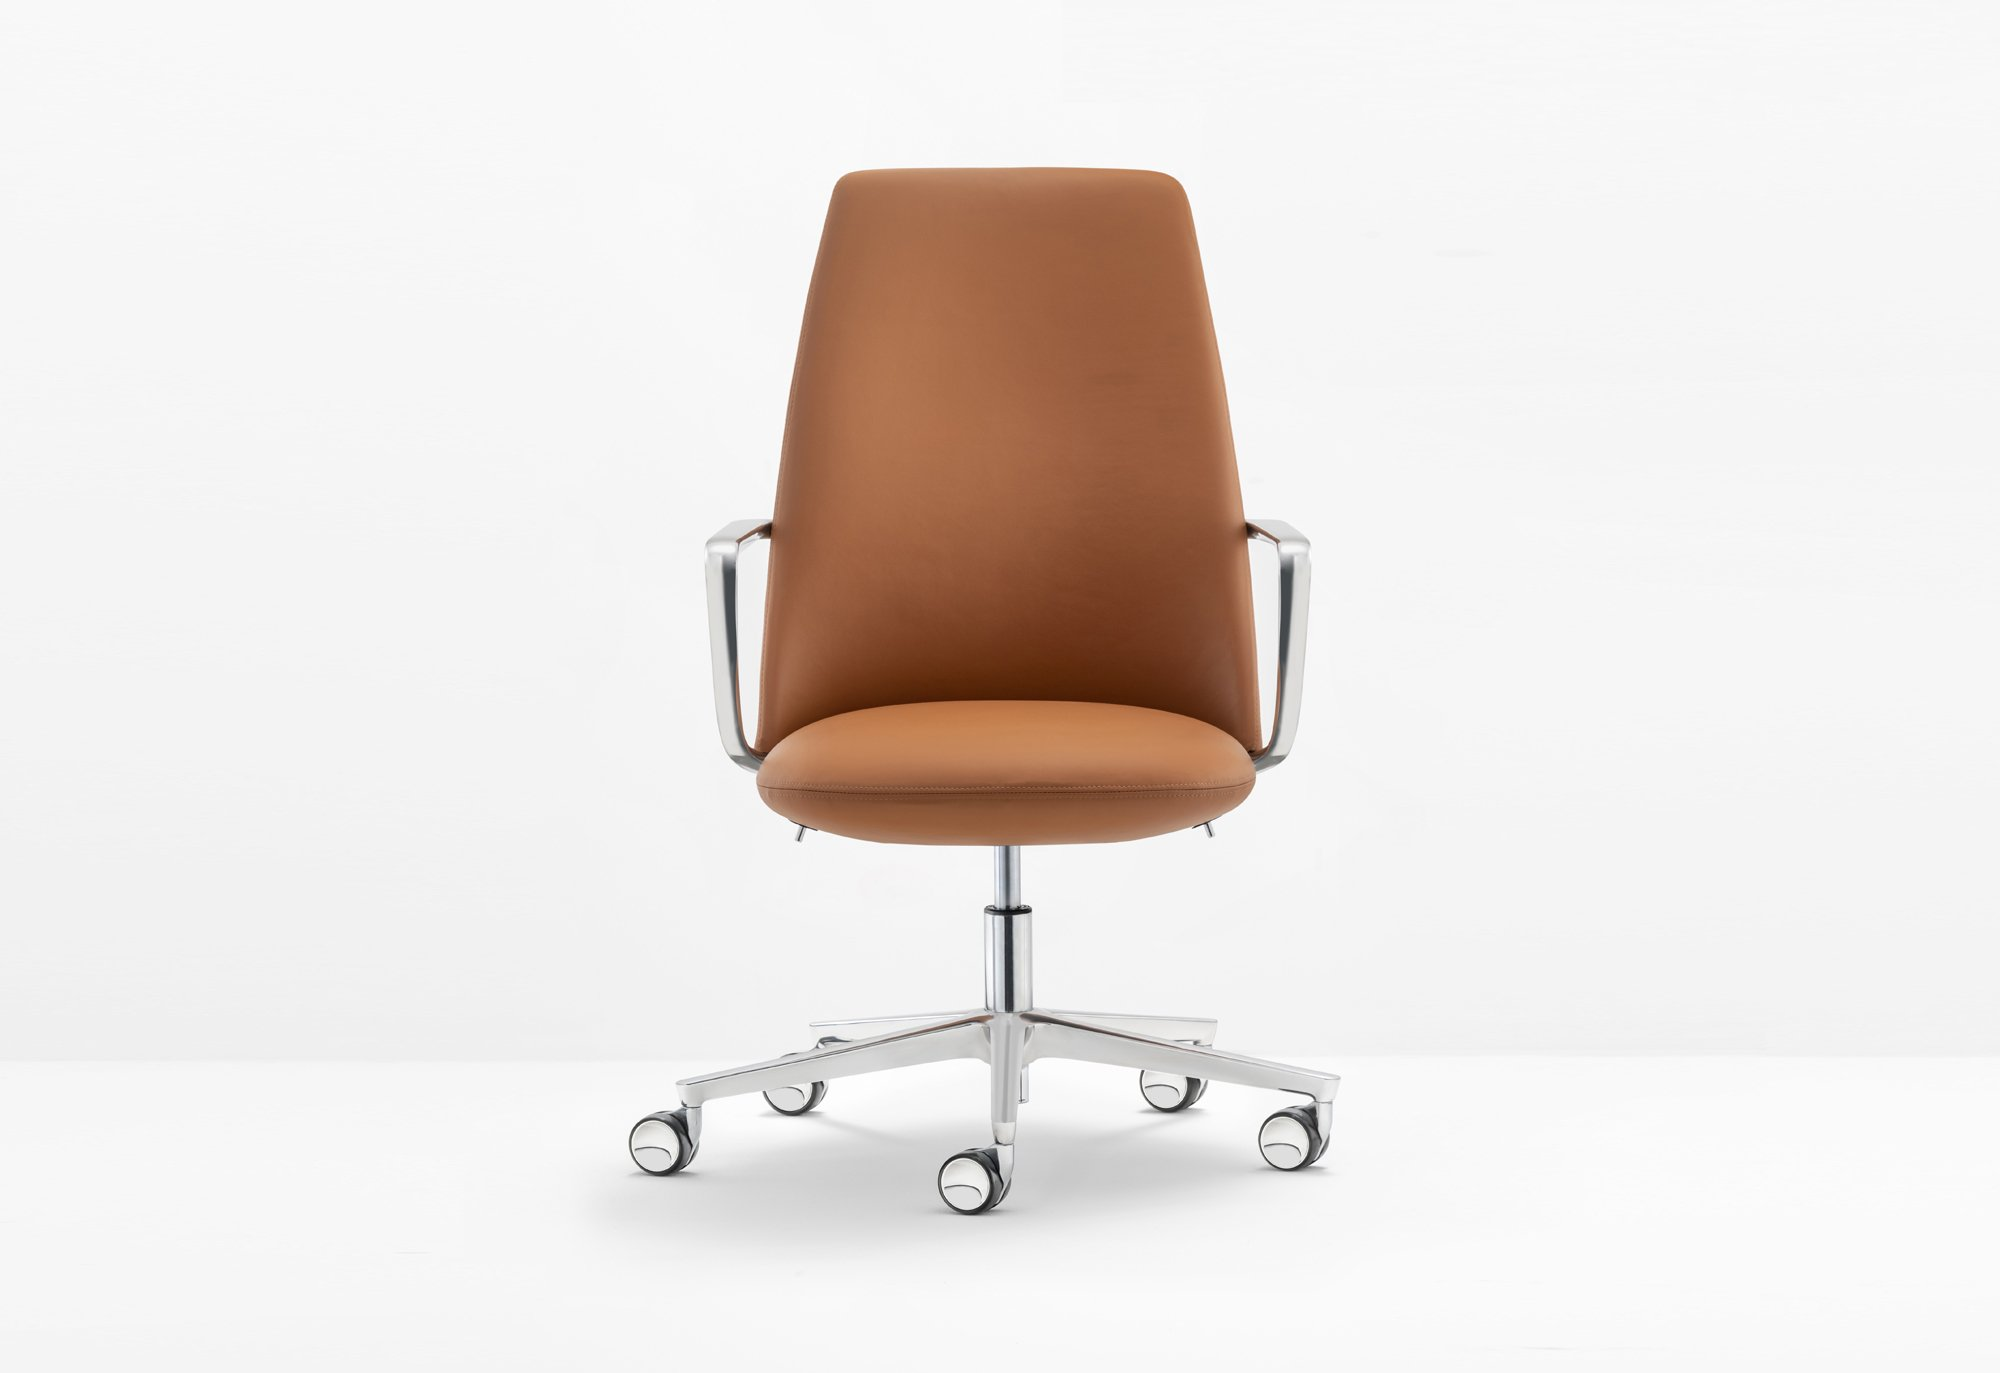 Elinor 3755 Office Chair from Pedrali, designed by Claudio Bellini